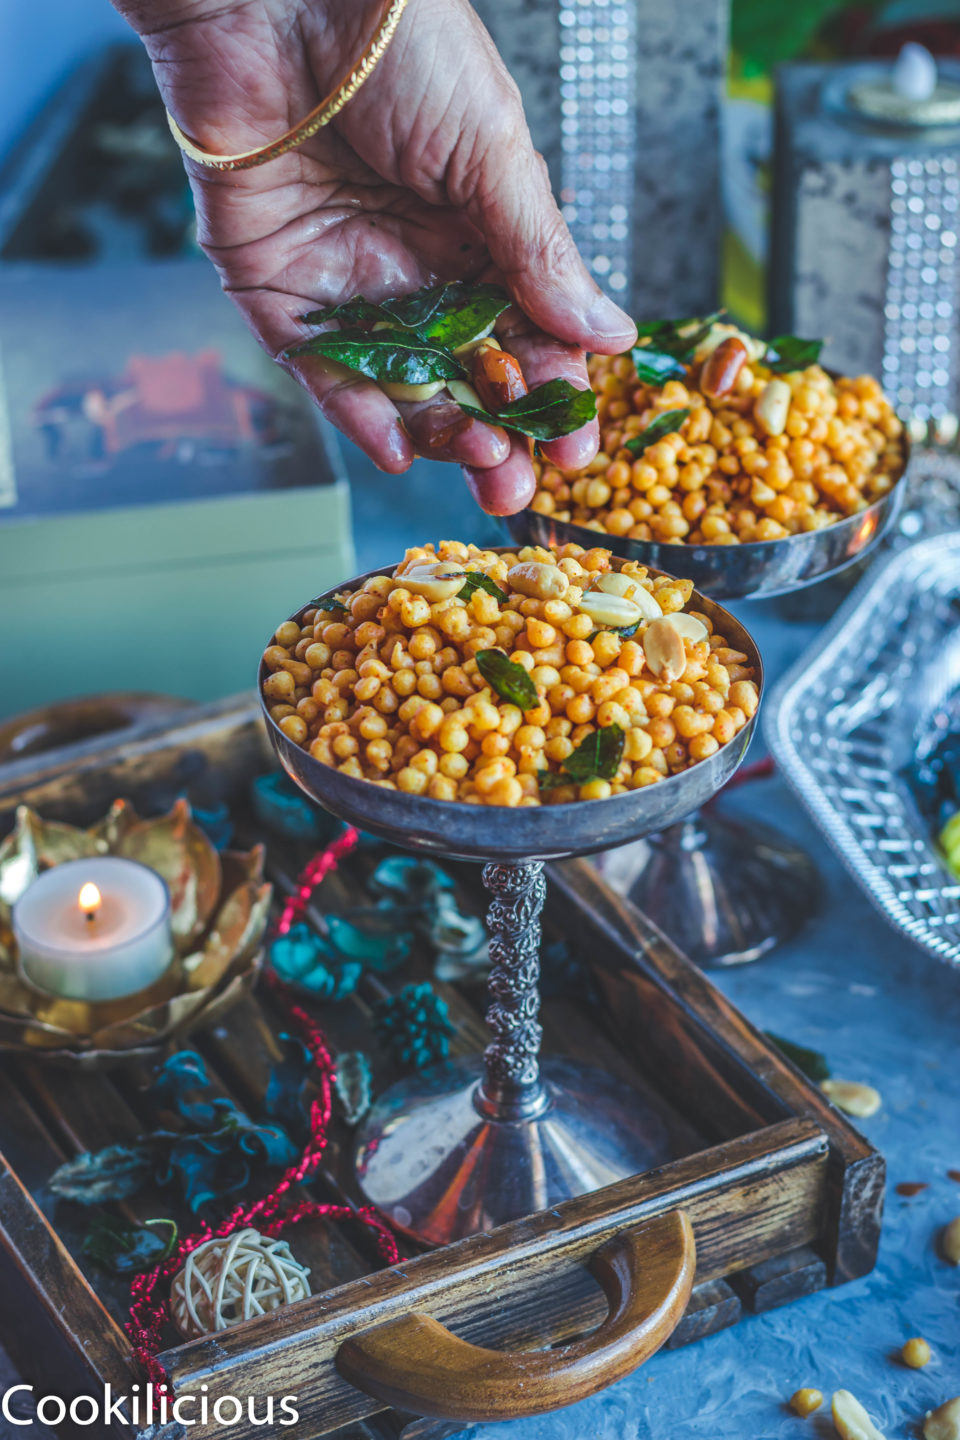 a hand garnishing a glass full of Kara Boondi Mixture with fried curry leaves